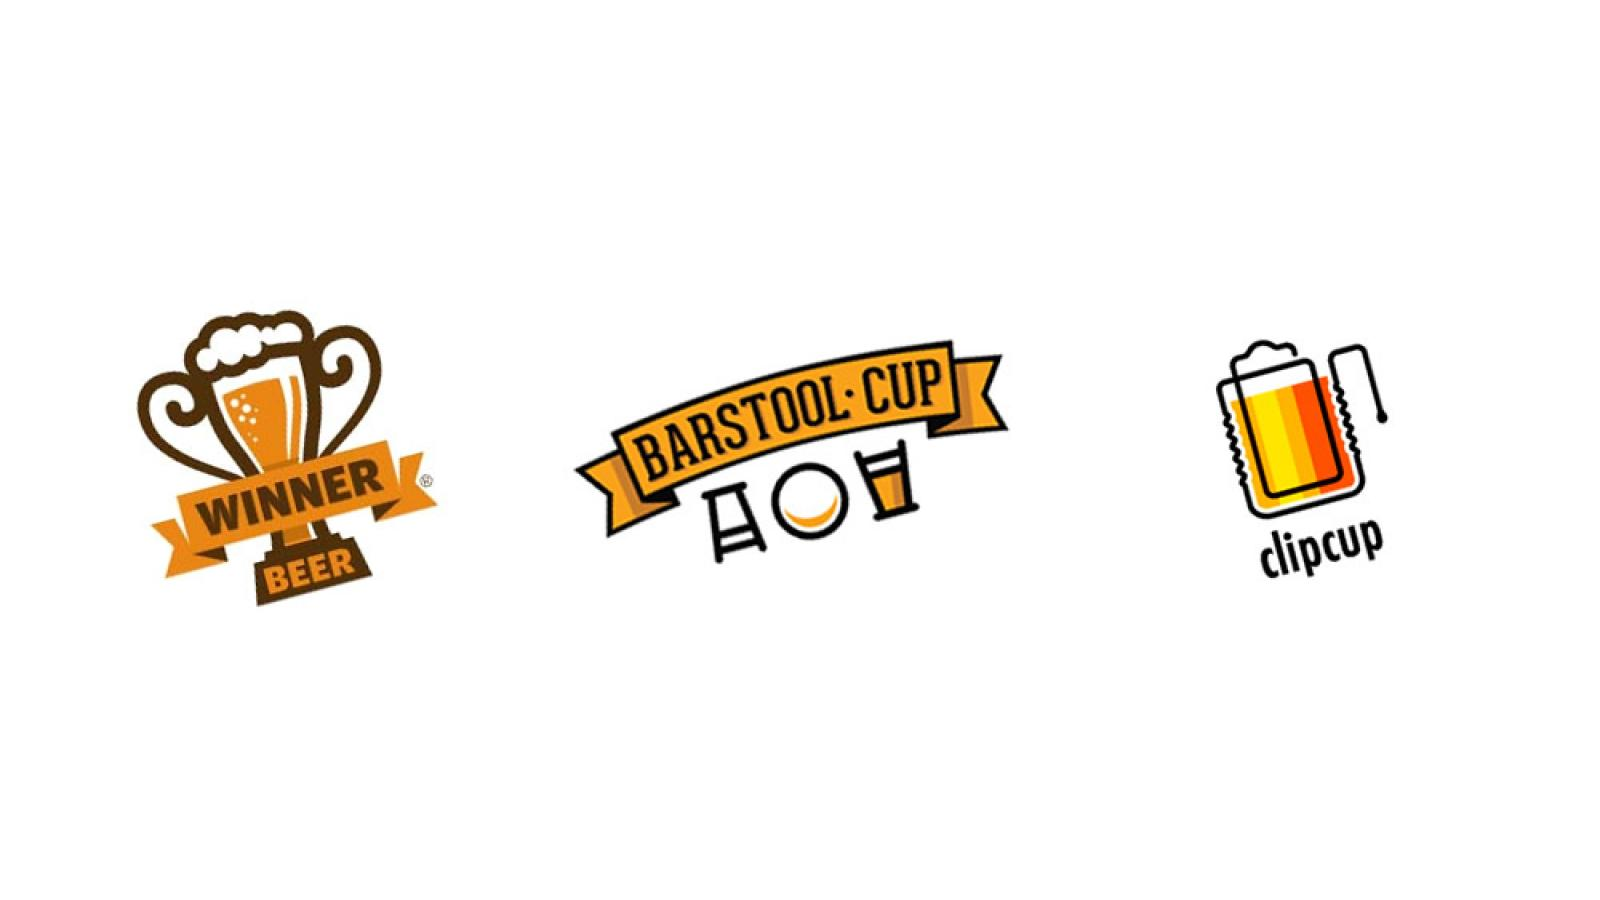 Logo Design: Beer